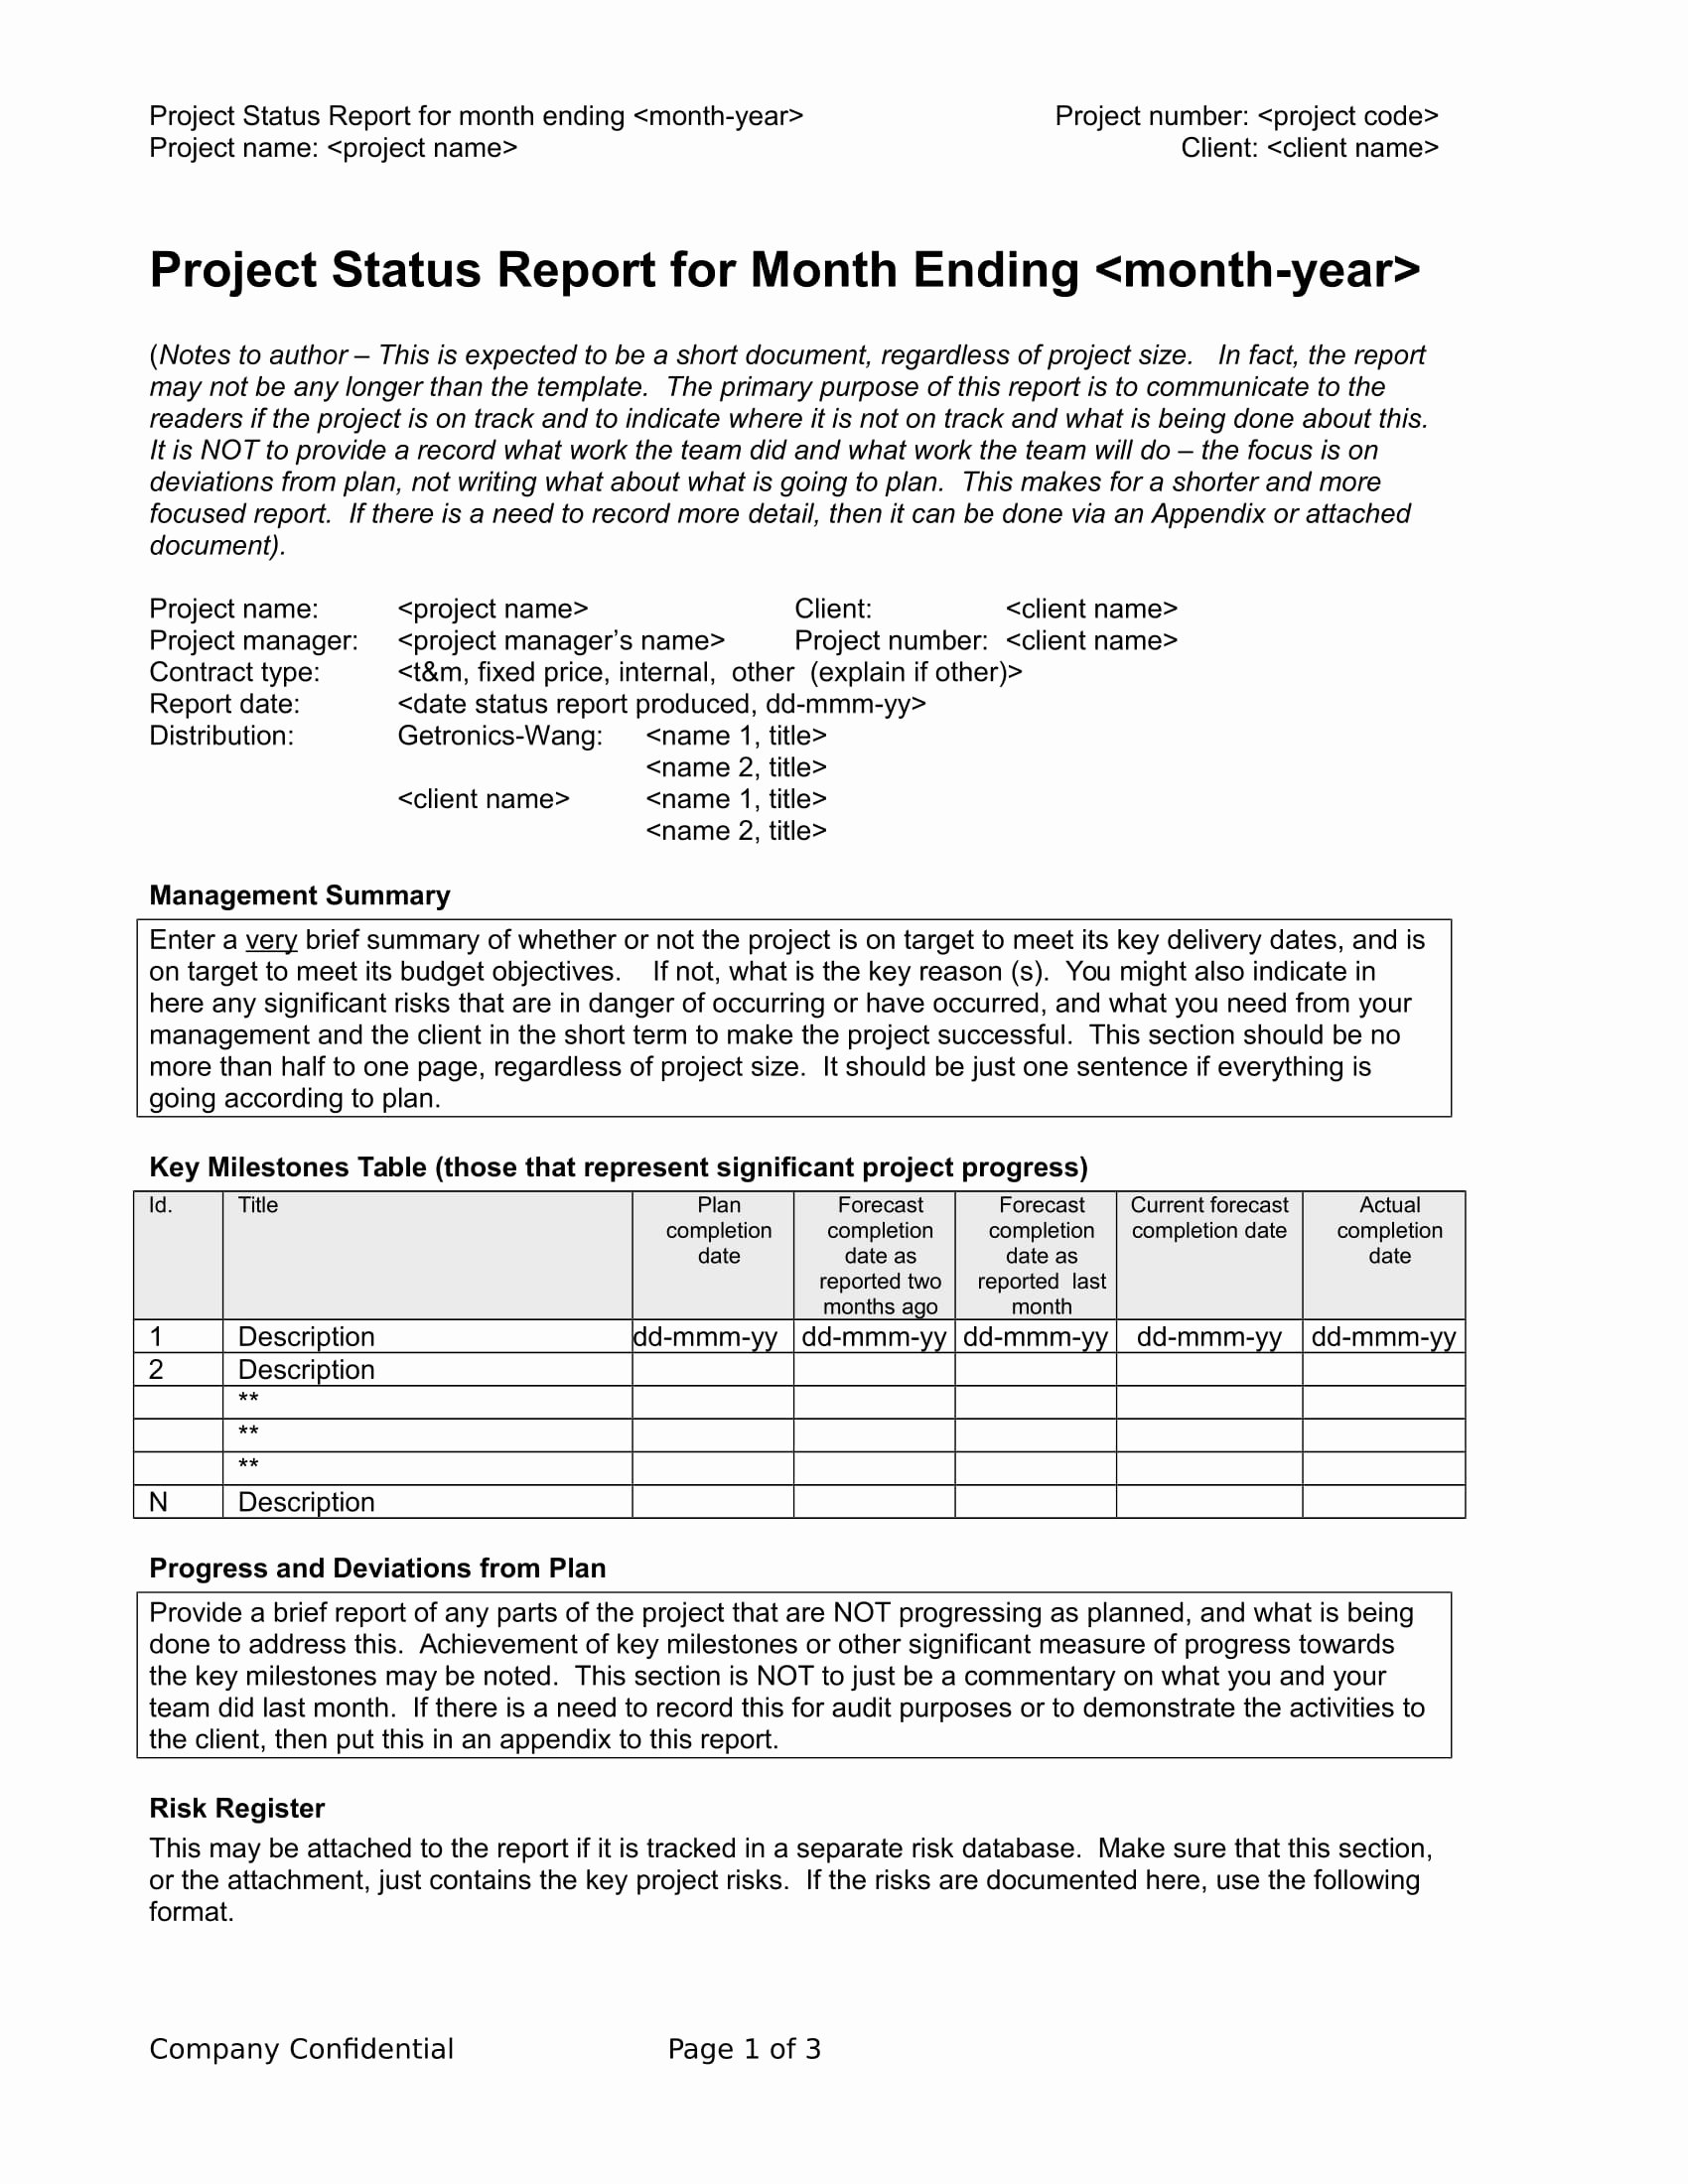 Project Management Progress Report Template Lovely 9 Status Report Examples Doc Pdf